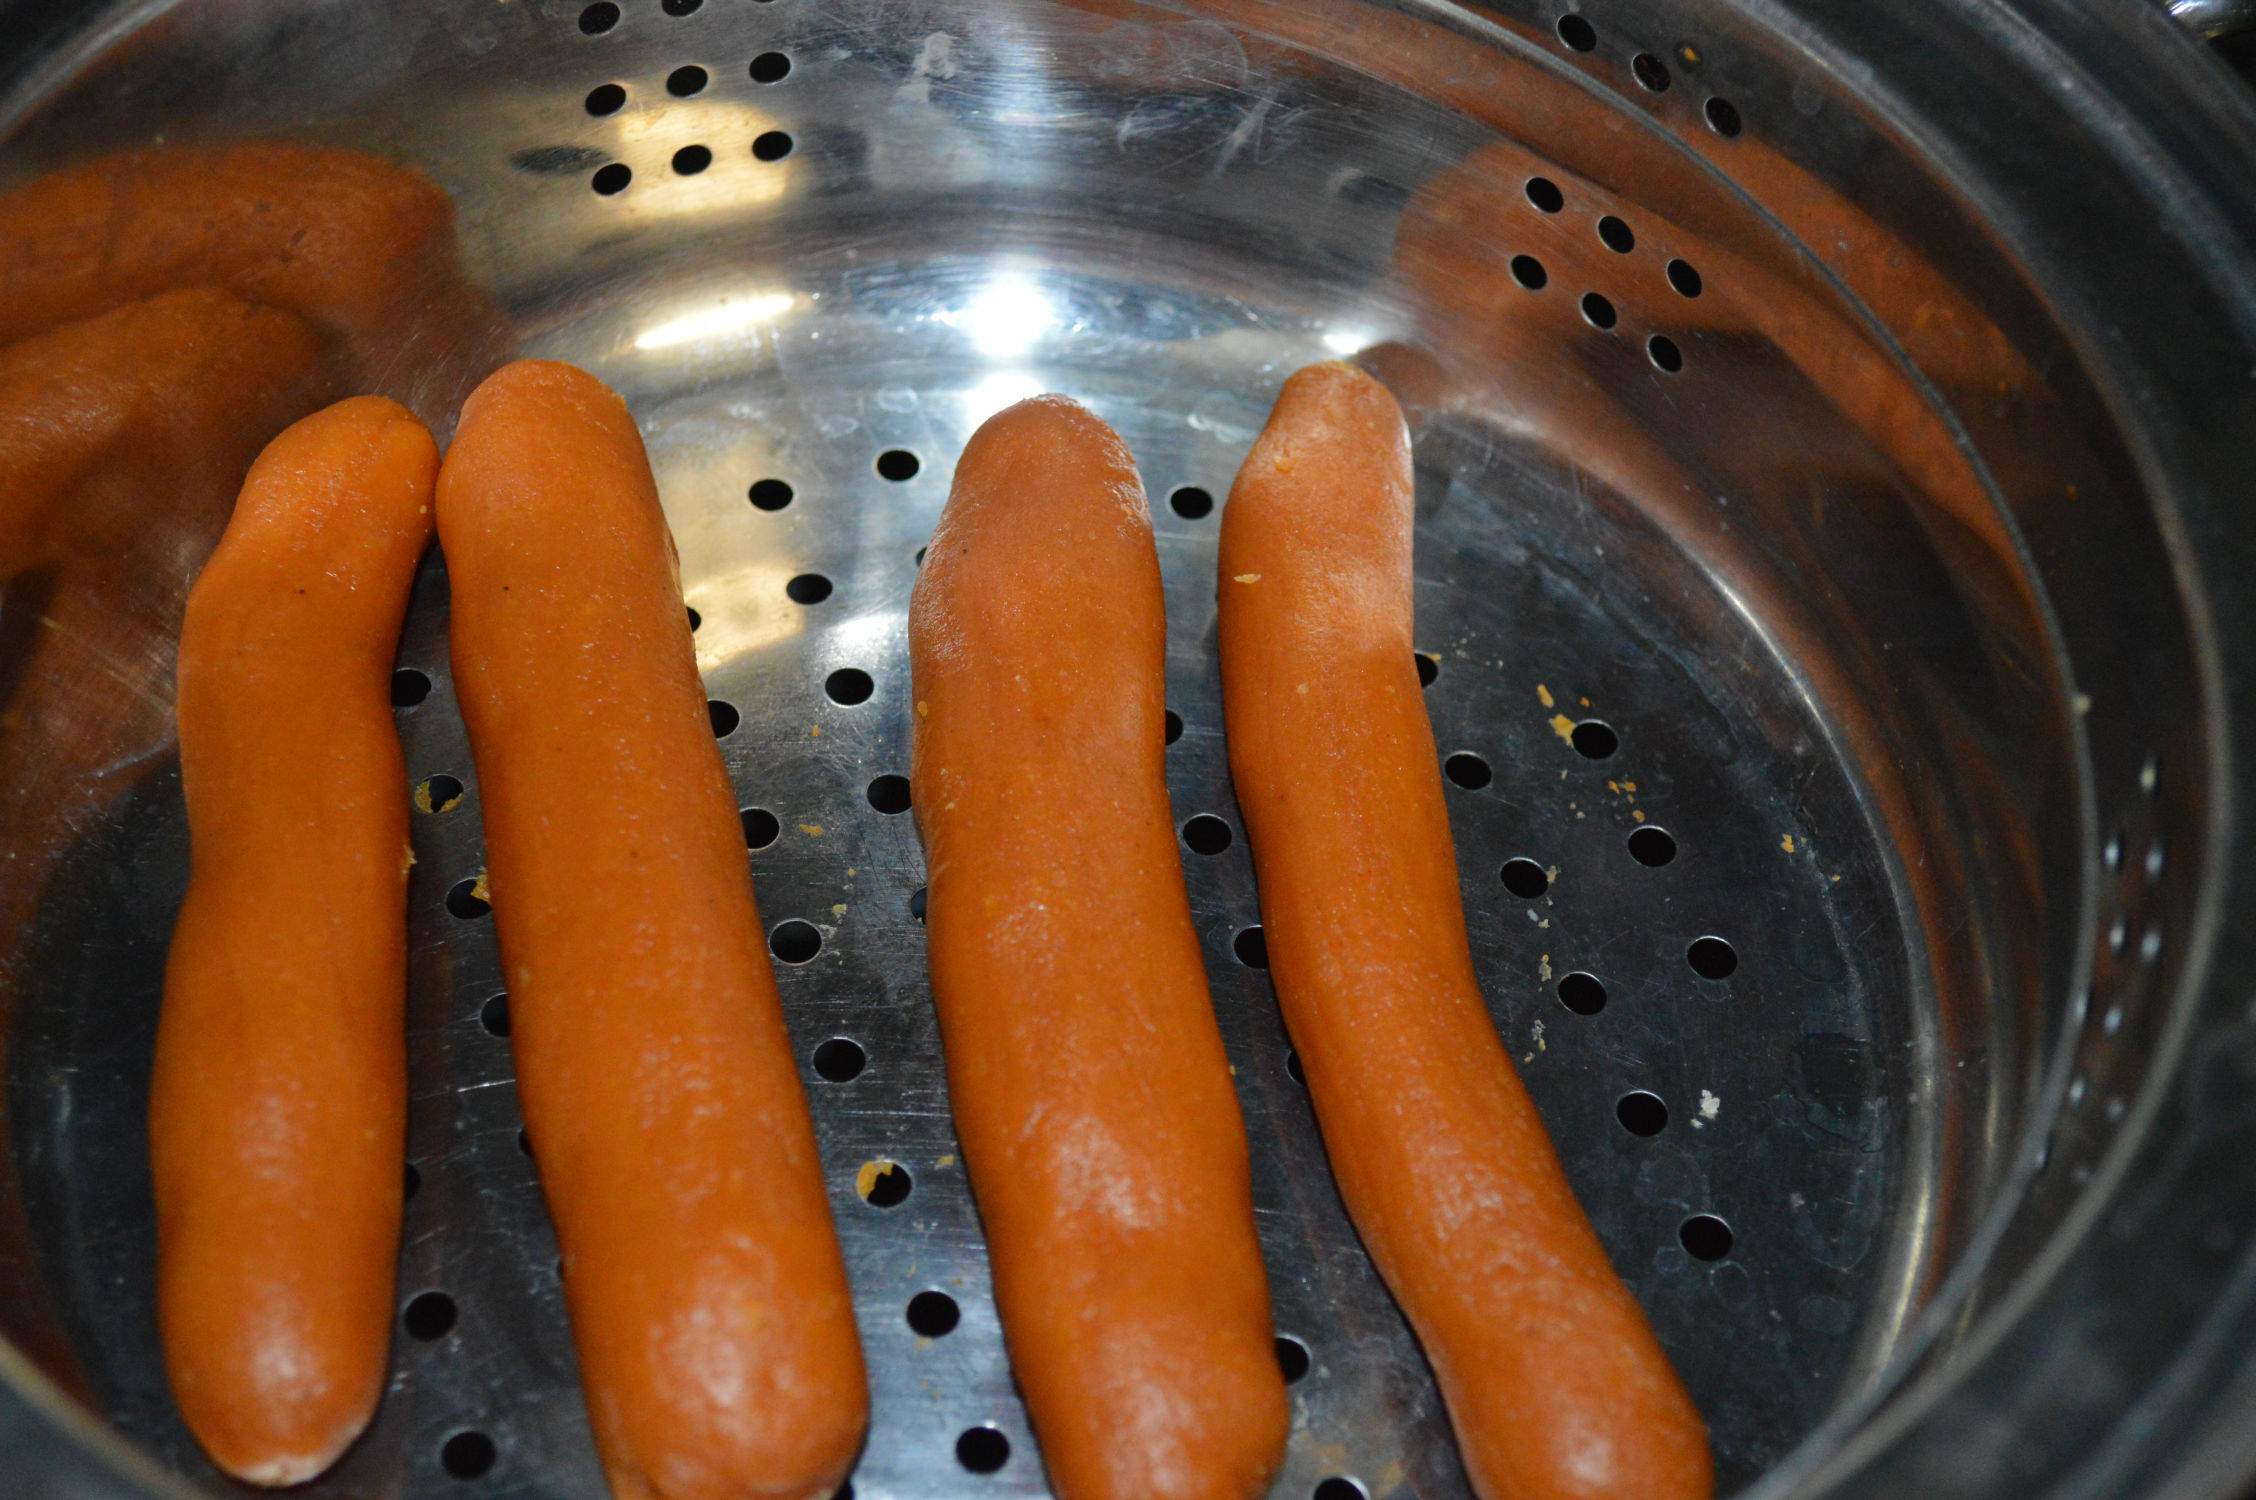 Add hot dog to steamer